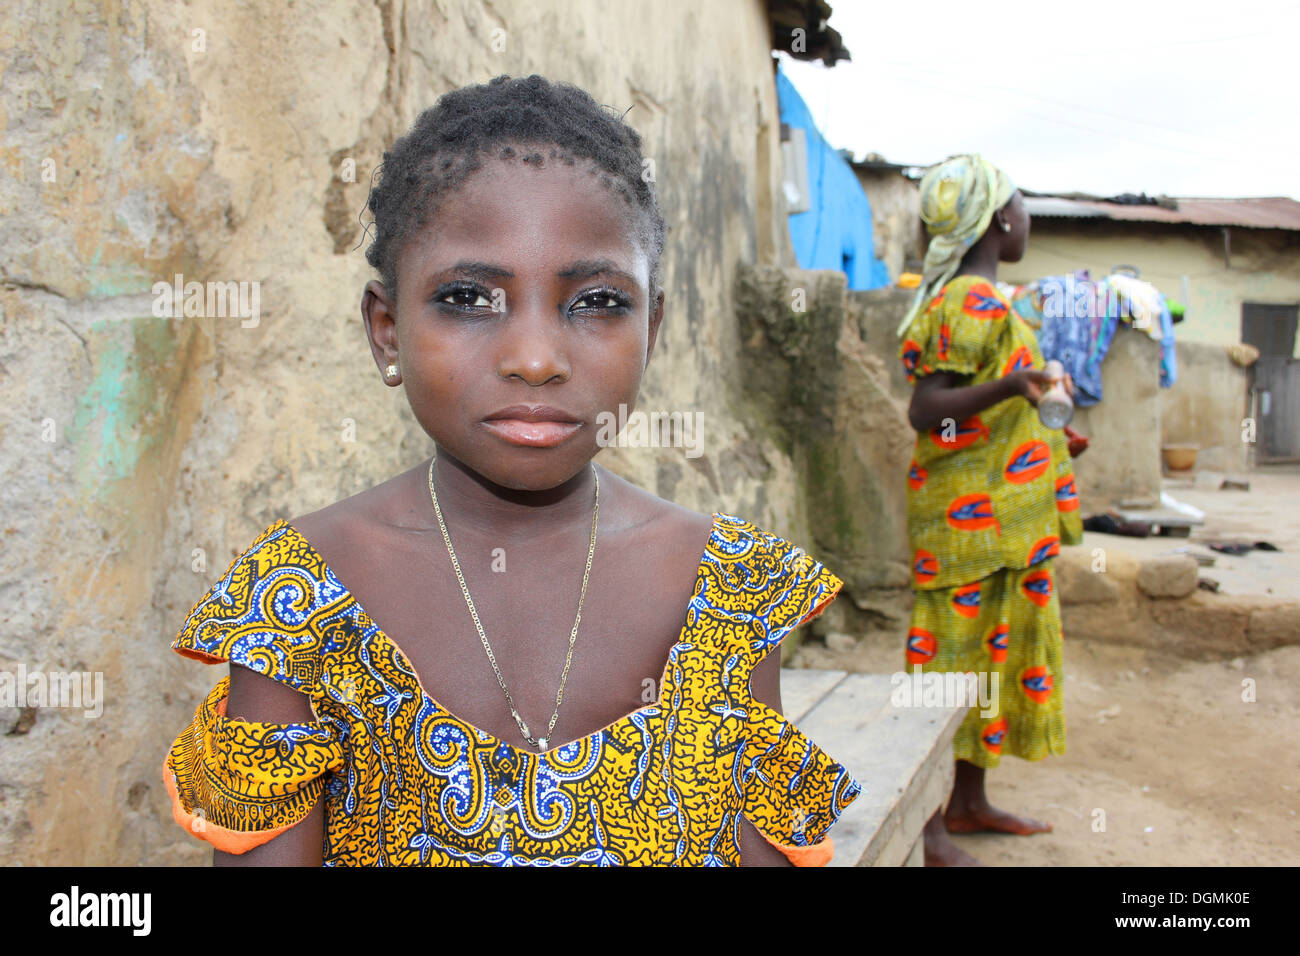 Young Gonja Girl Of the Guan Ethnic Group, Ghana - Stock Image